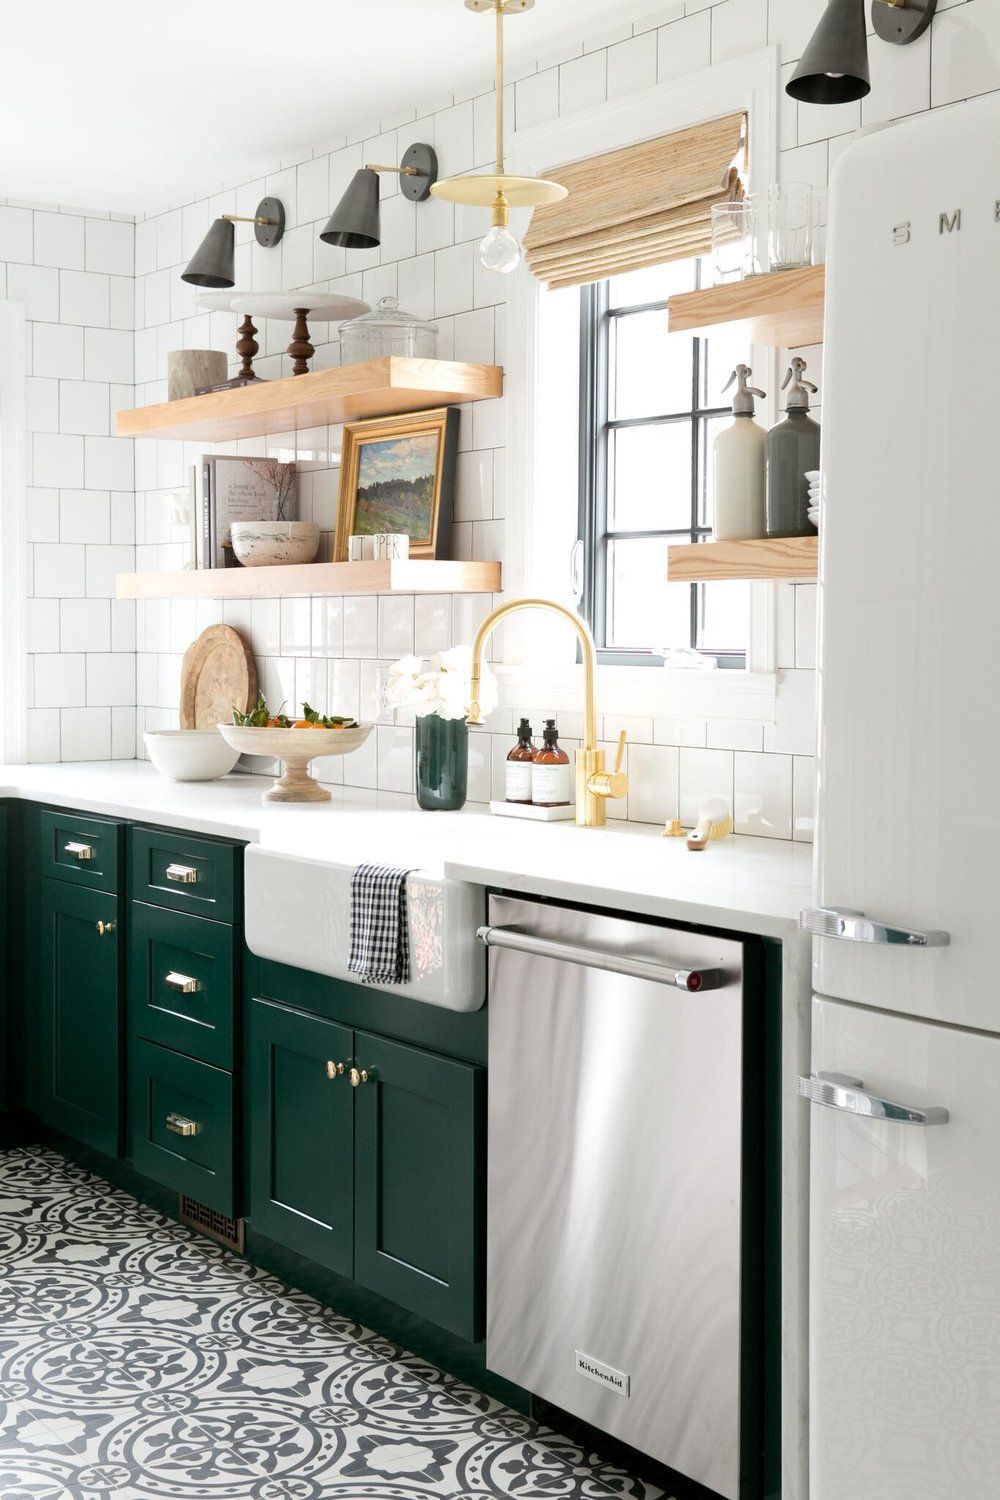 Our paint guide to cabinet colors studio mcgee kitchens house